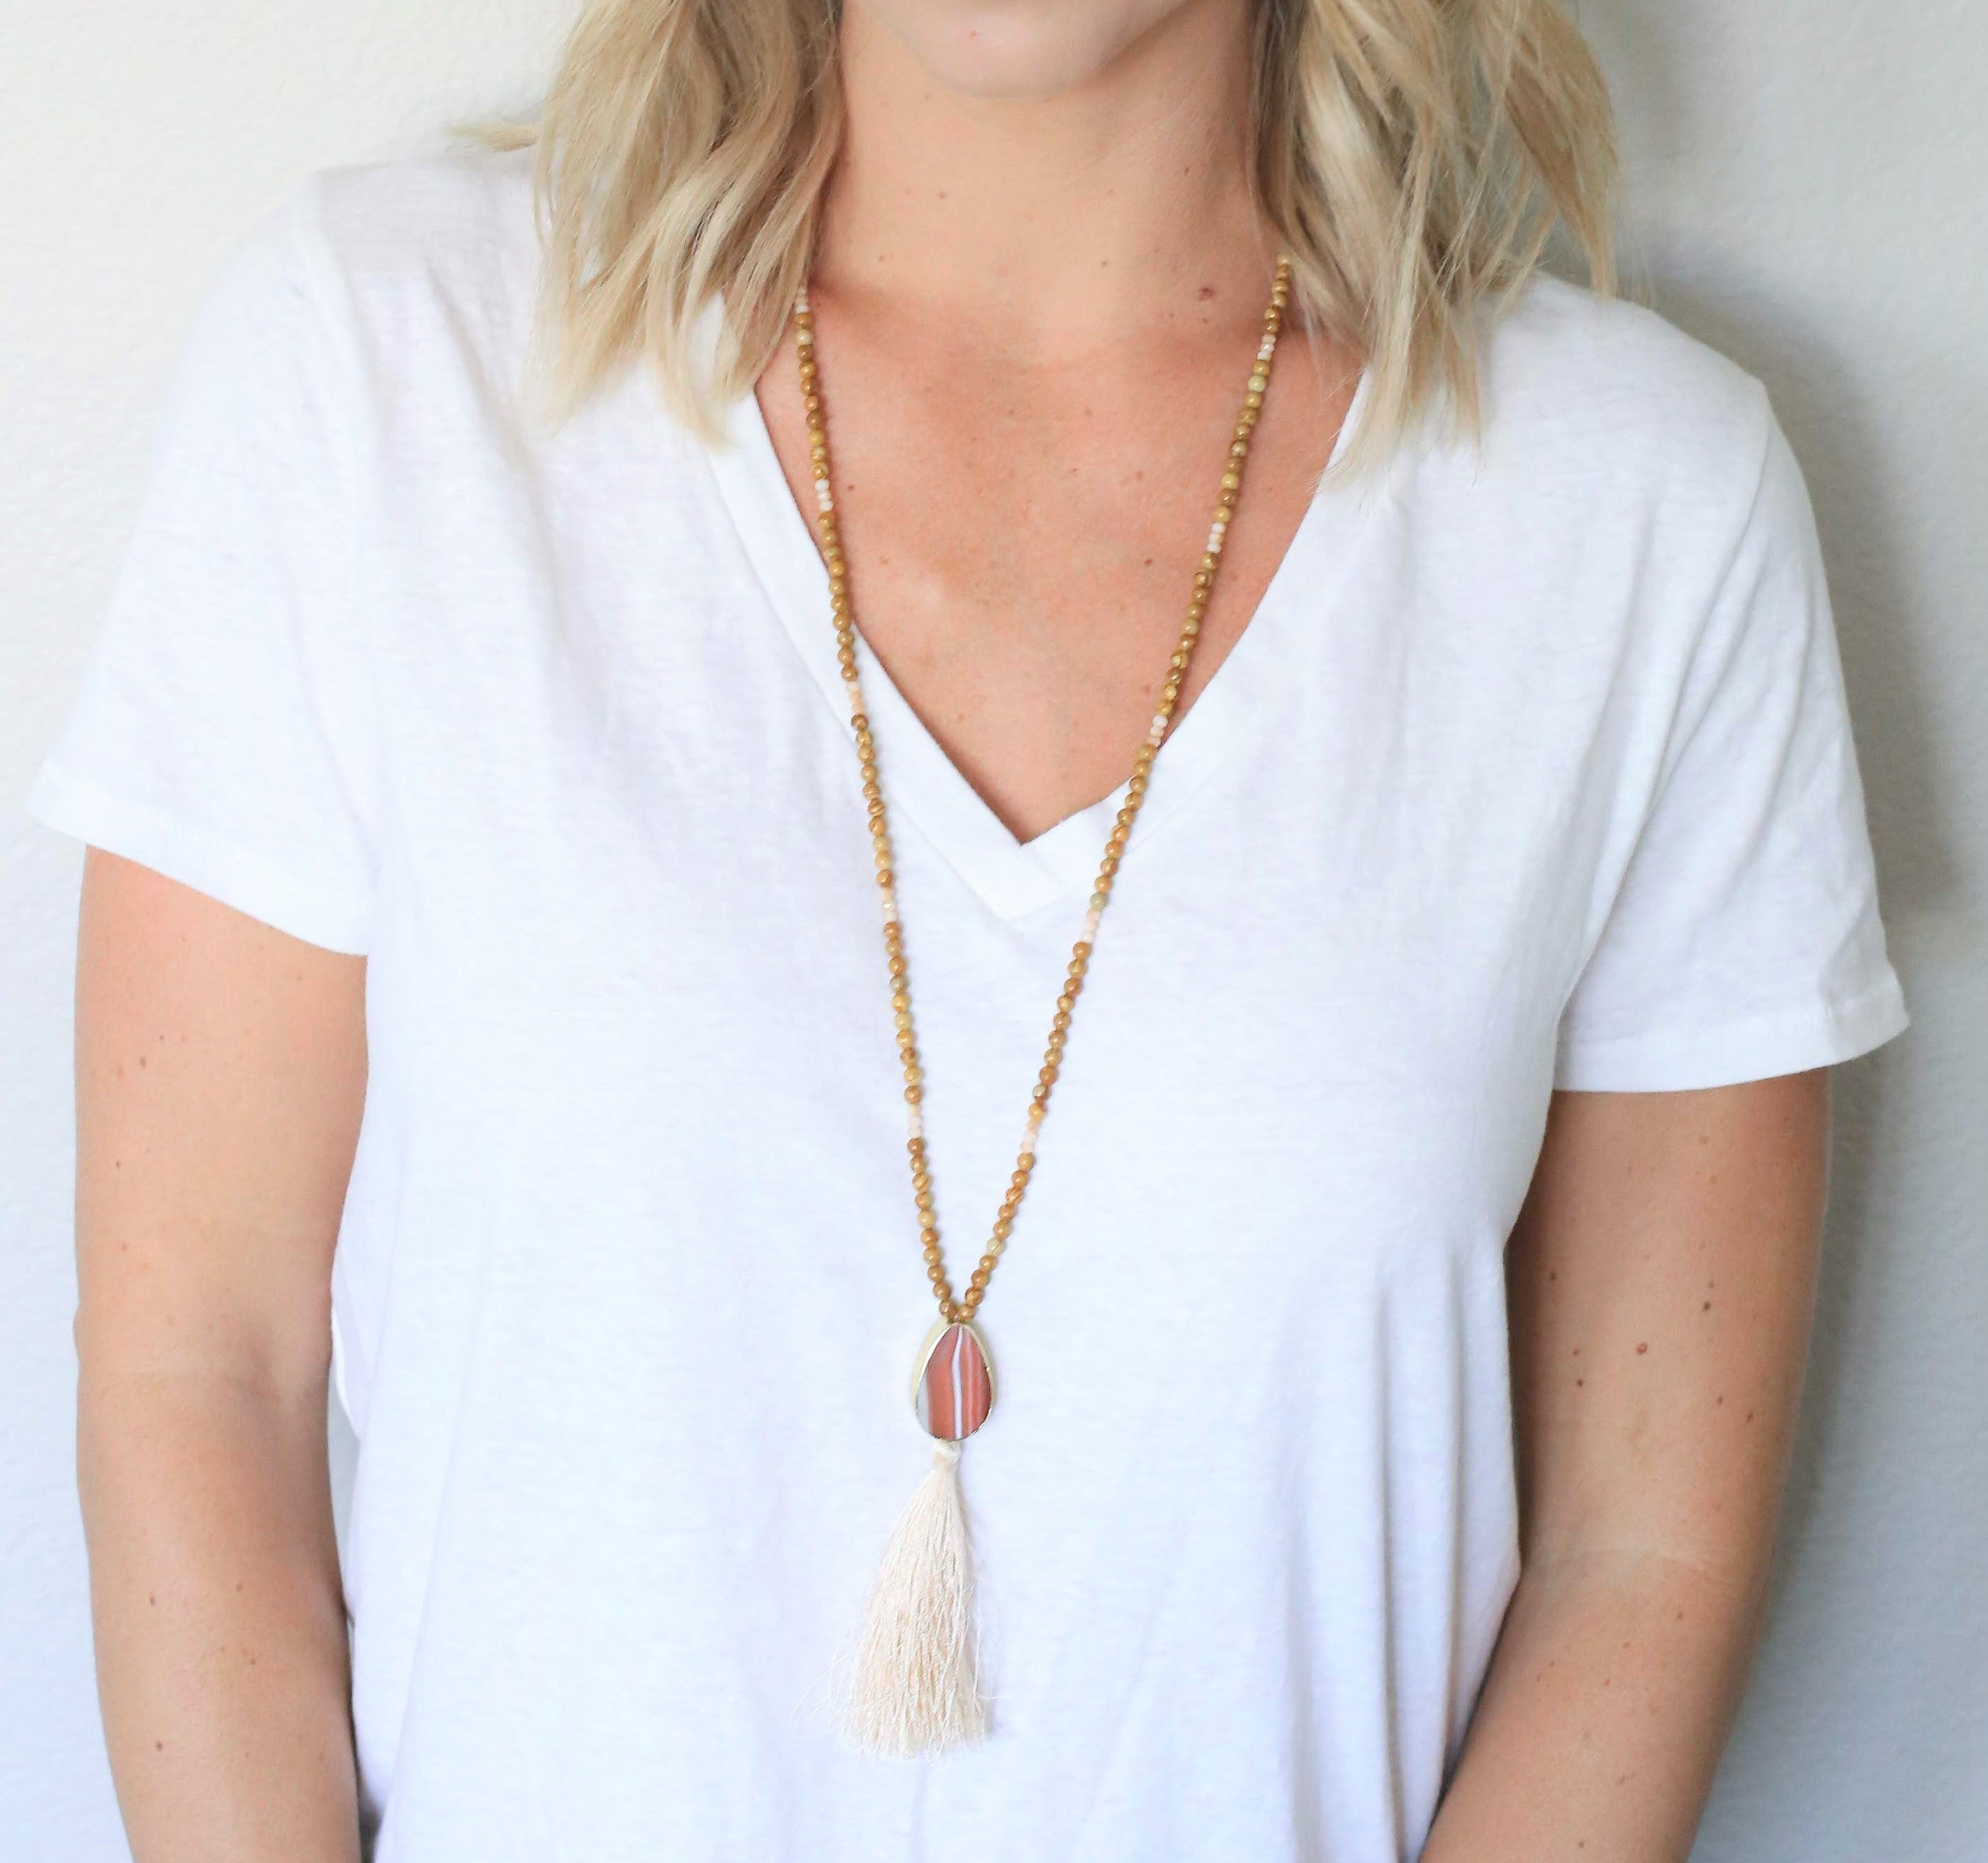 Element Necklace - Carolyn Hearn Designs